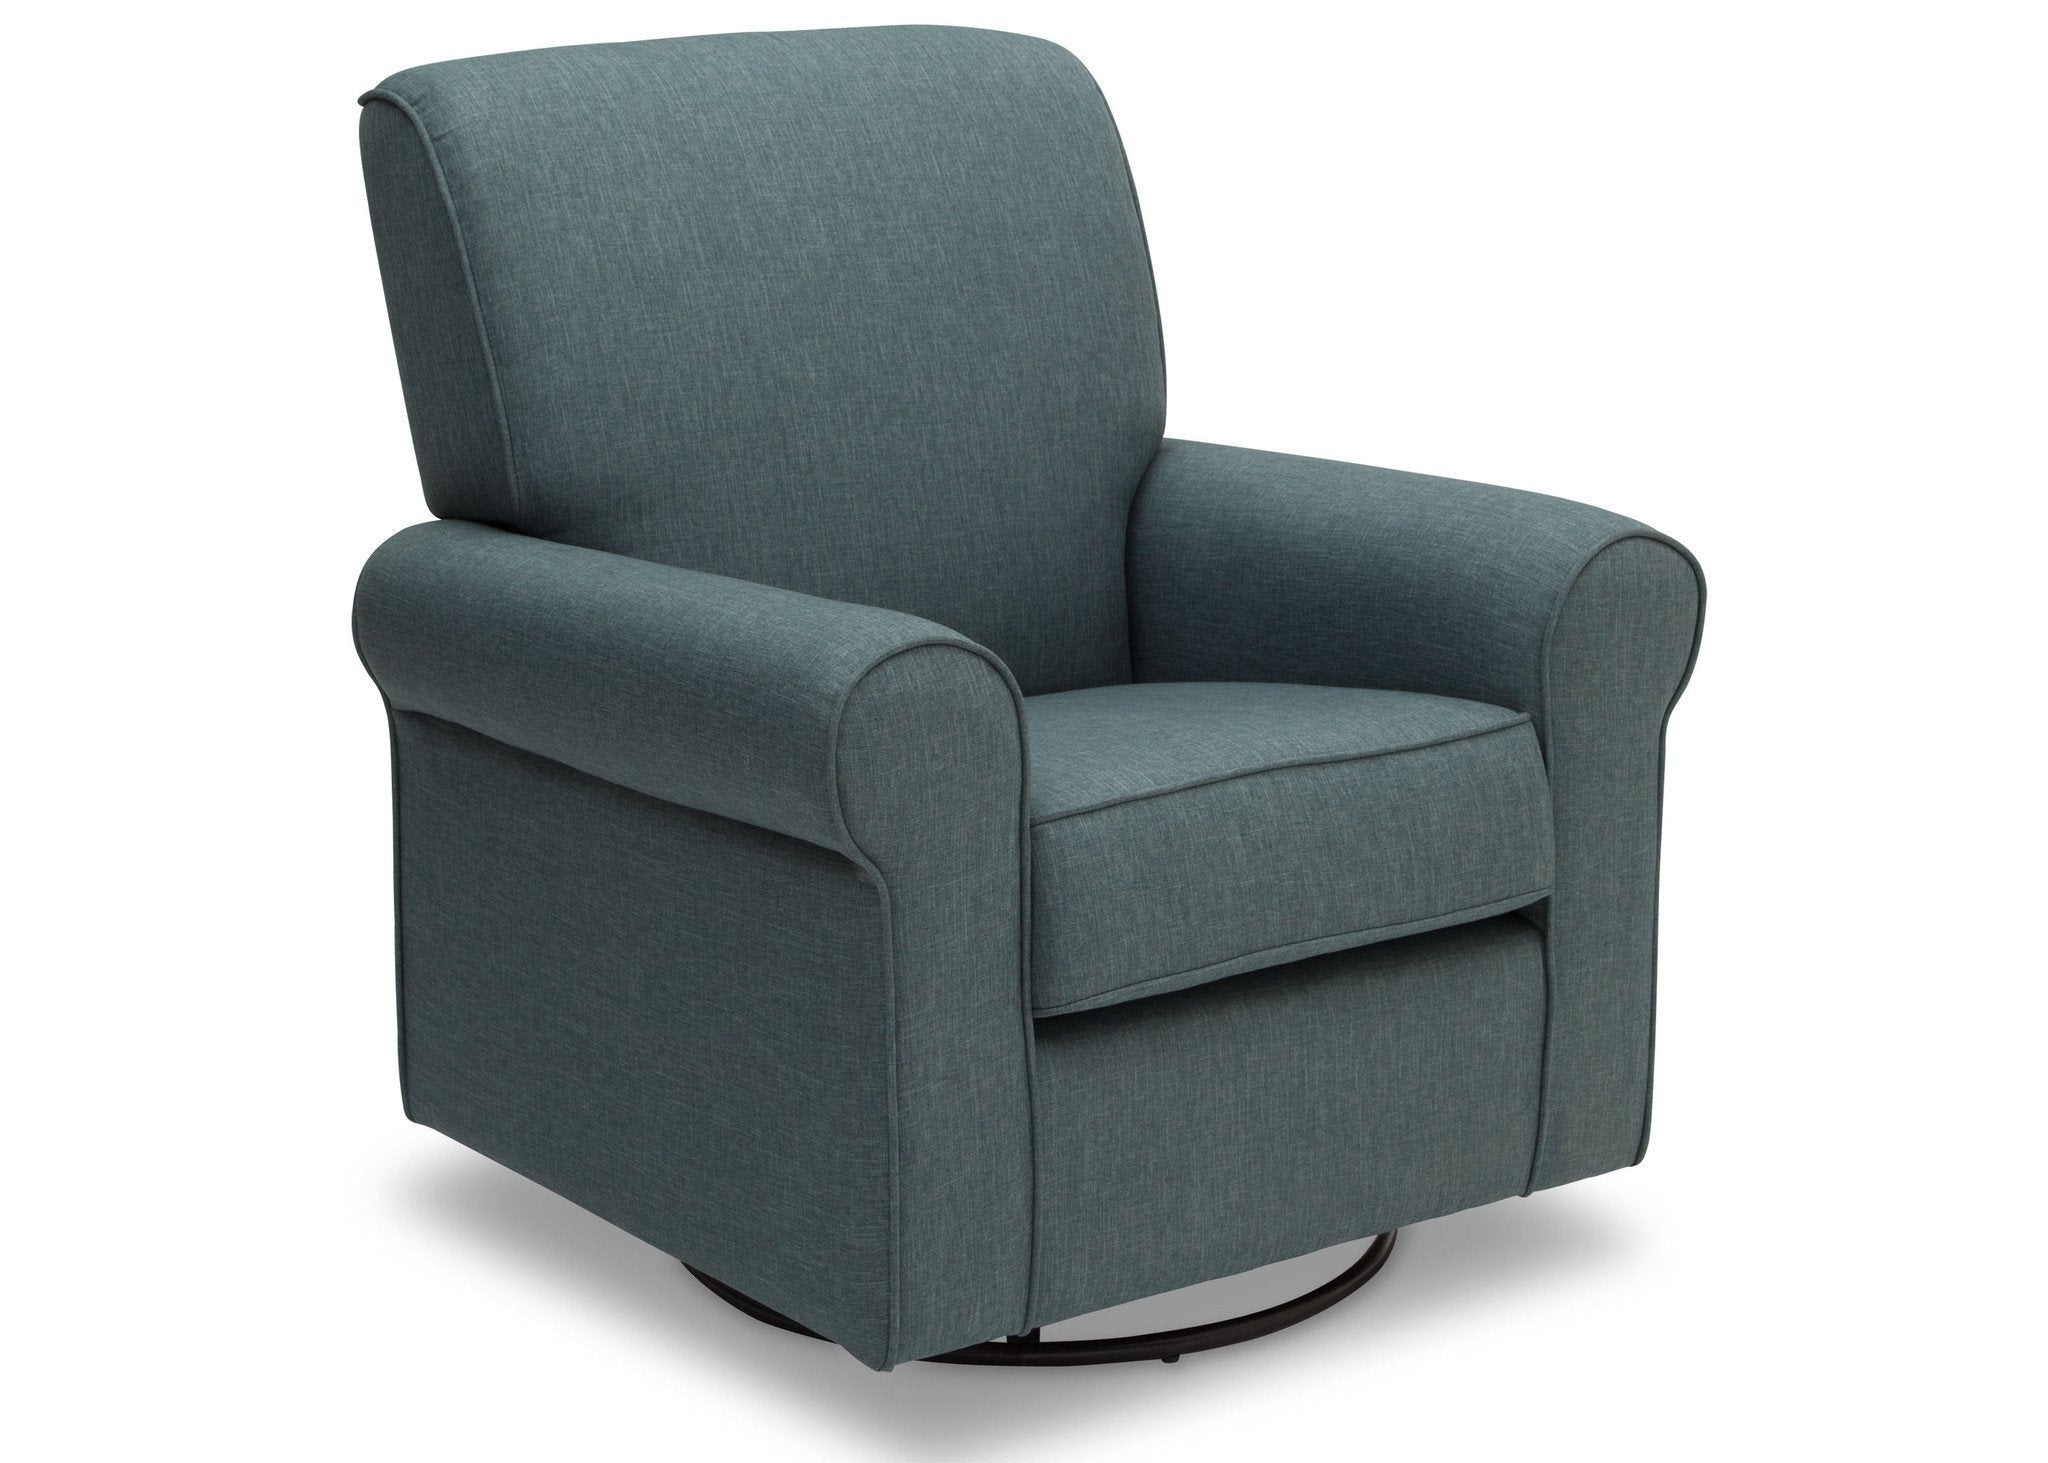 Simmons Kids Lagoon (428) Avery Upholstered Glider, Right Side View d2d